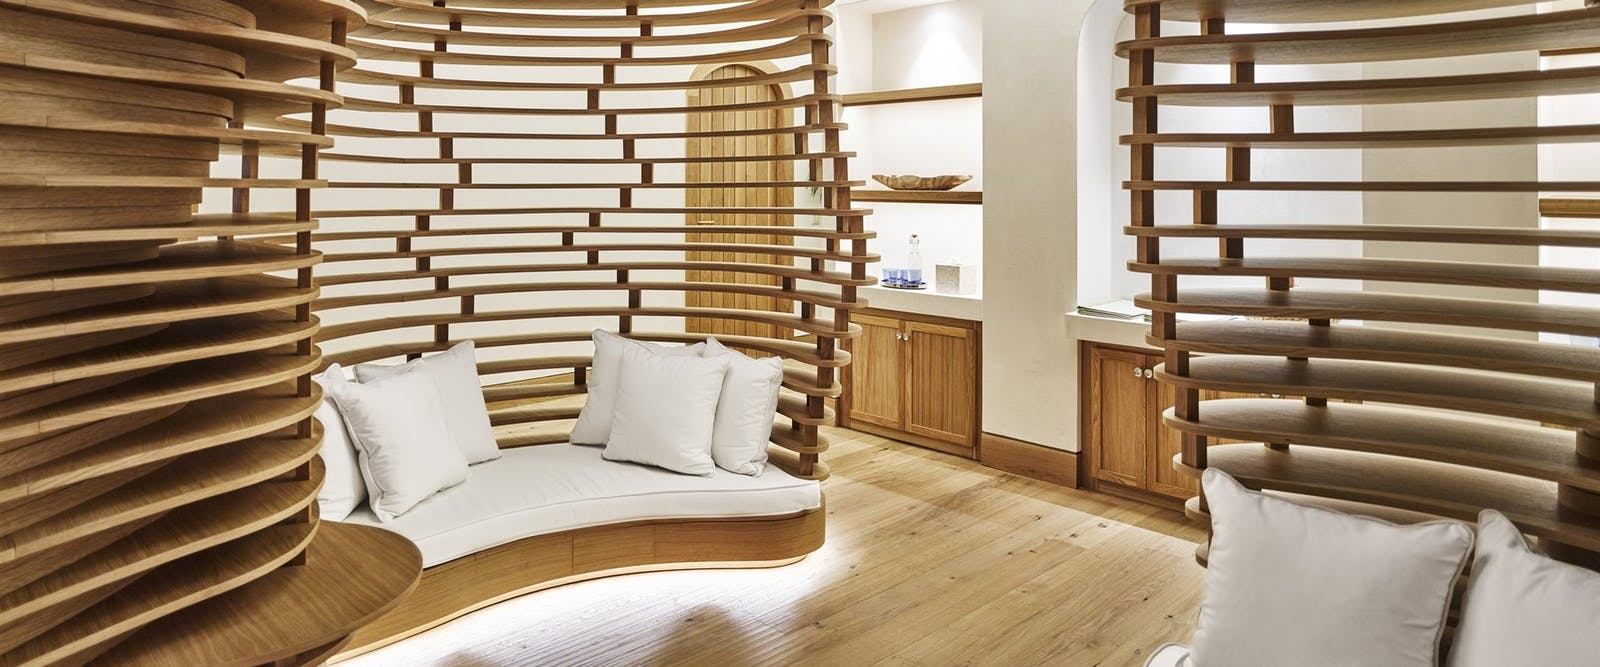 Six Senses Spa at Nobu Marbella, Costa Del Sol, Spain